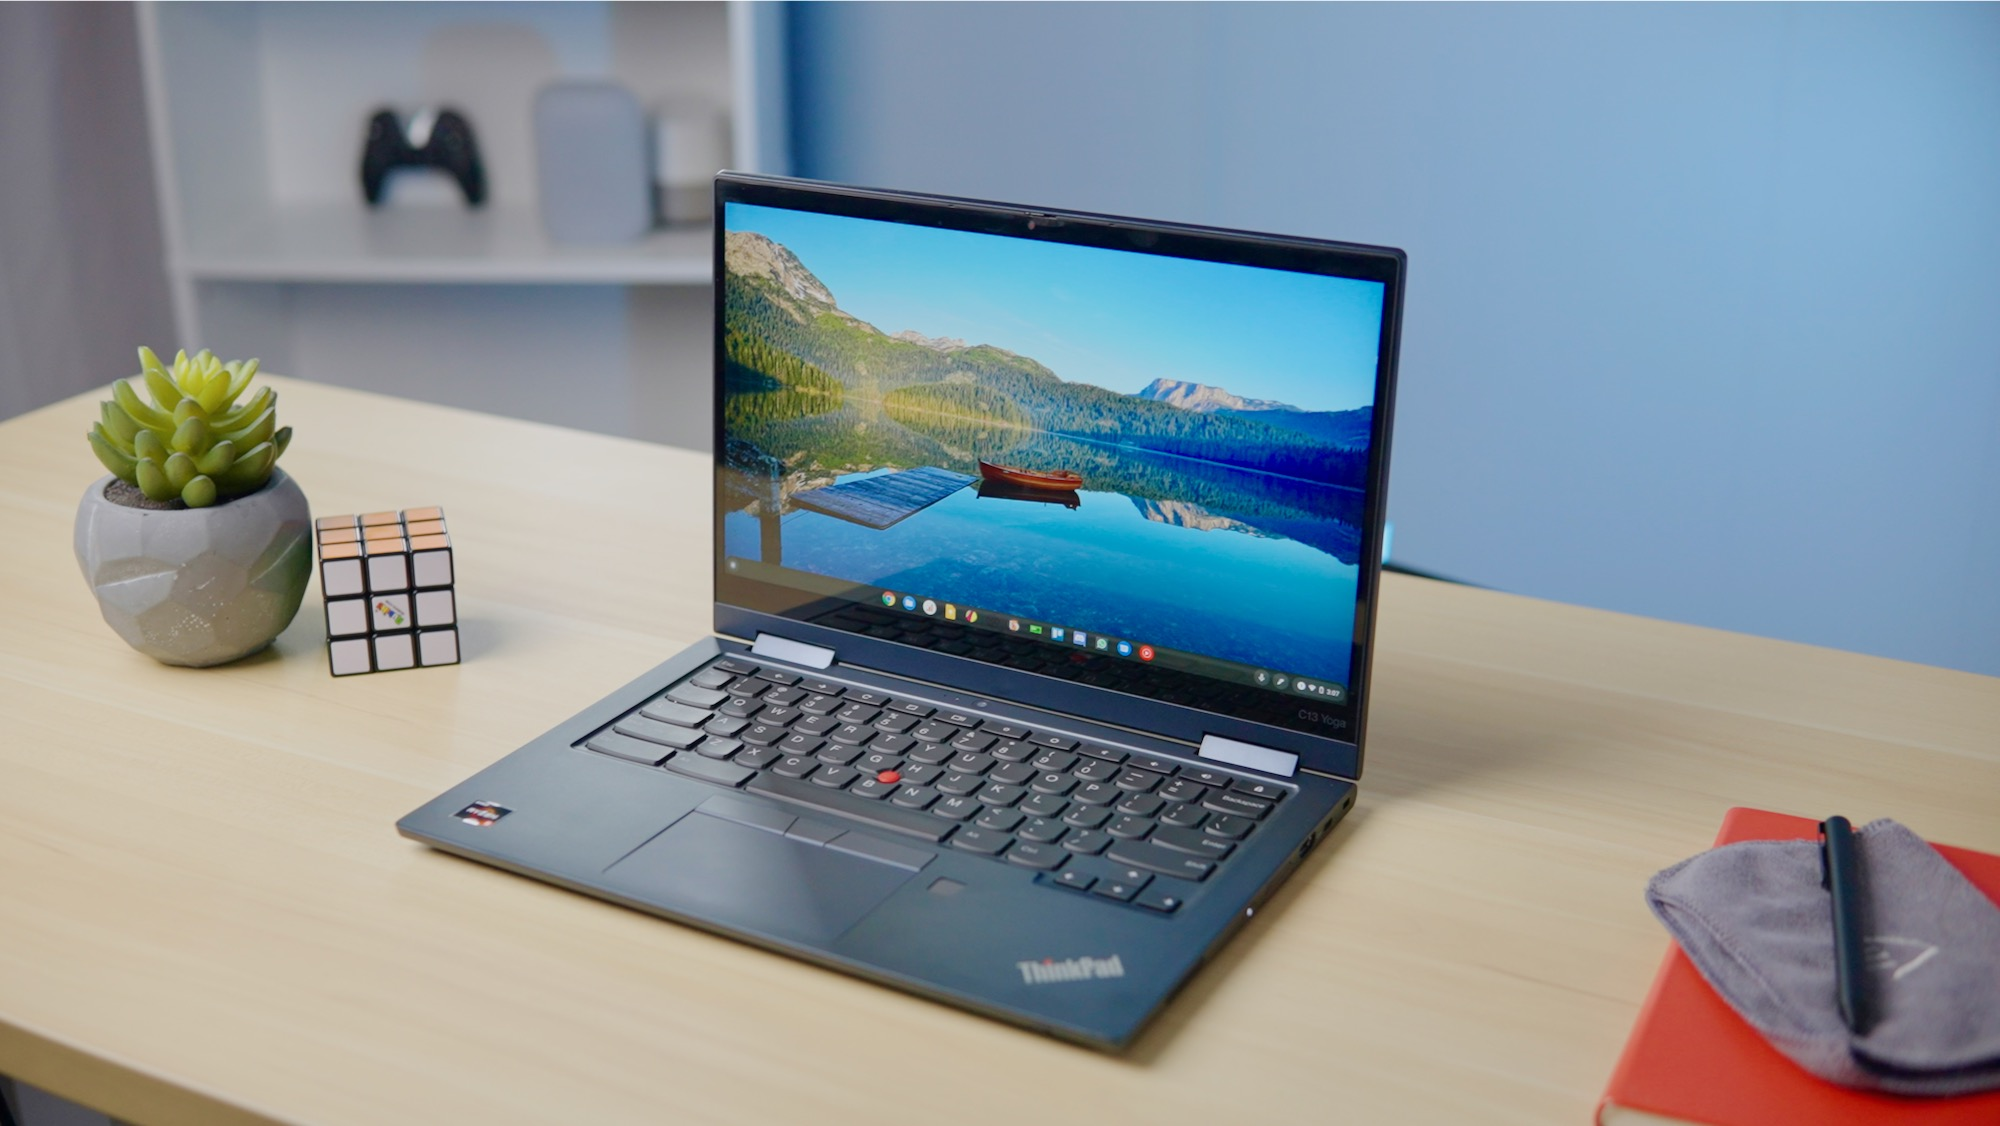 AMD Ryzen Chromebooks suffering massive slow-downs when not plugged in